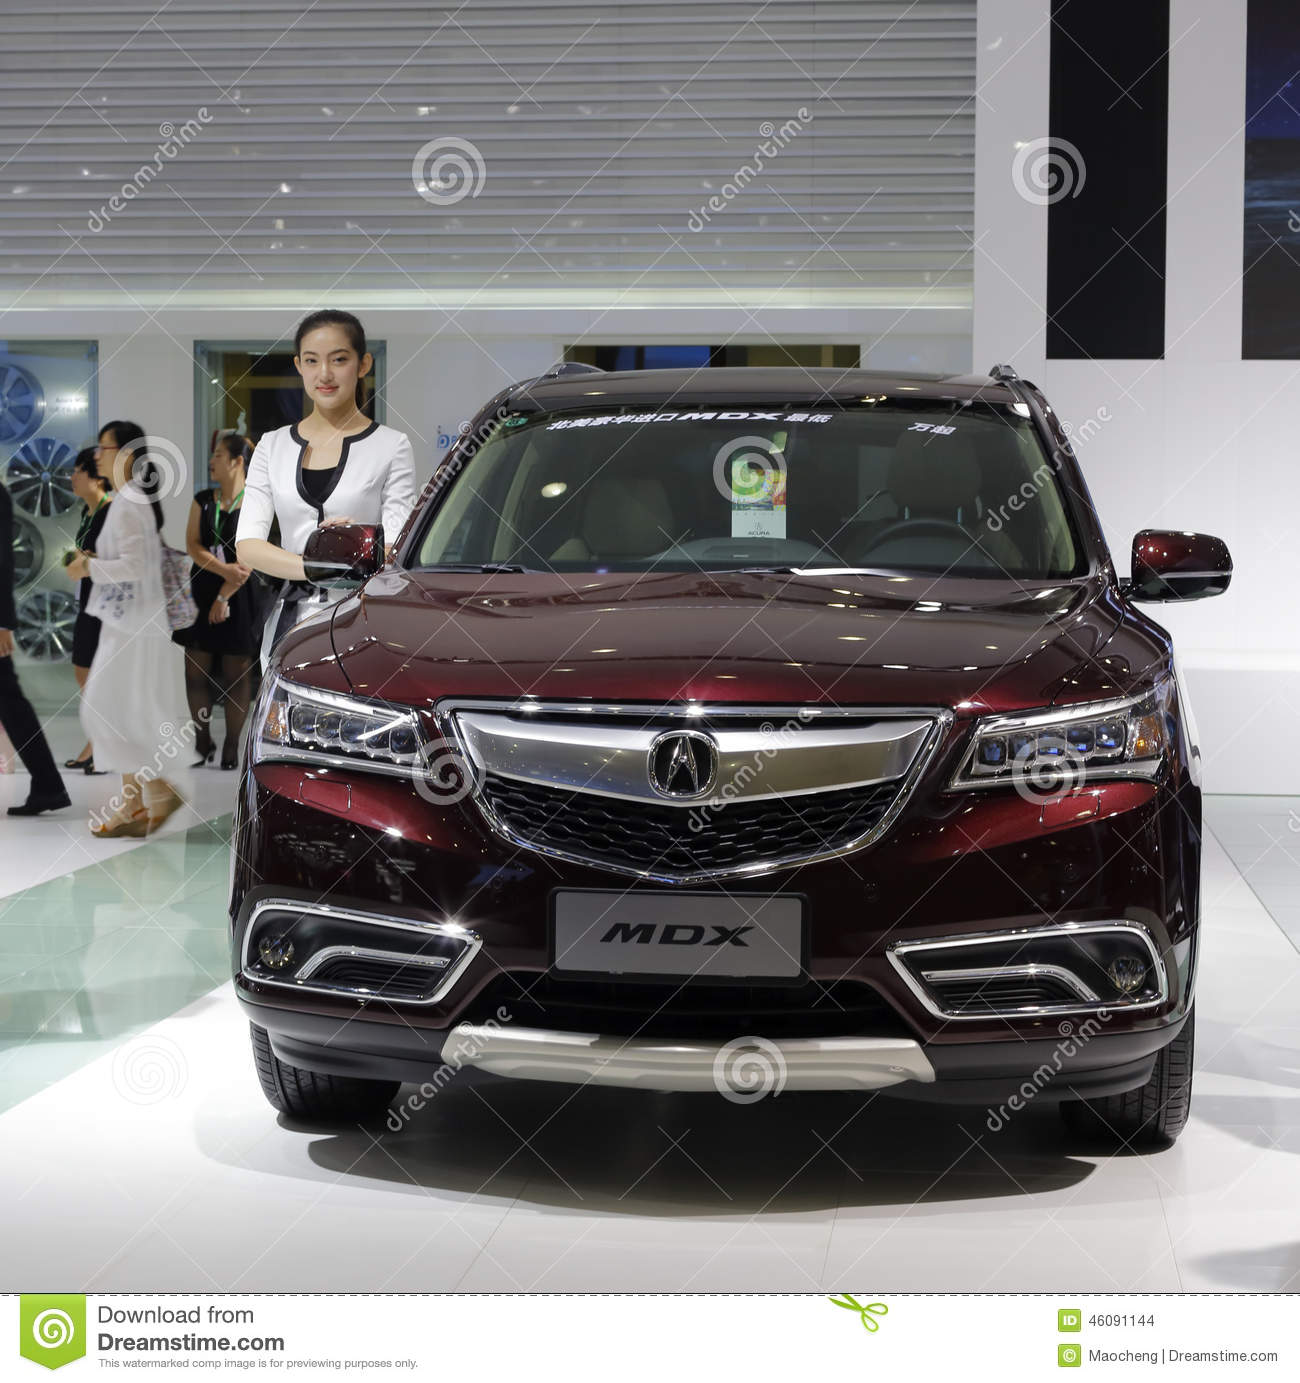 Acura Mdx Car Editorial Stock Image. Image Of Wheel